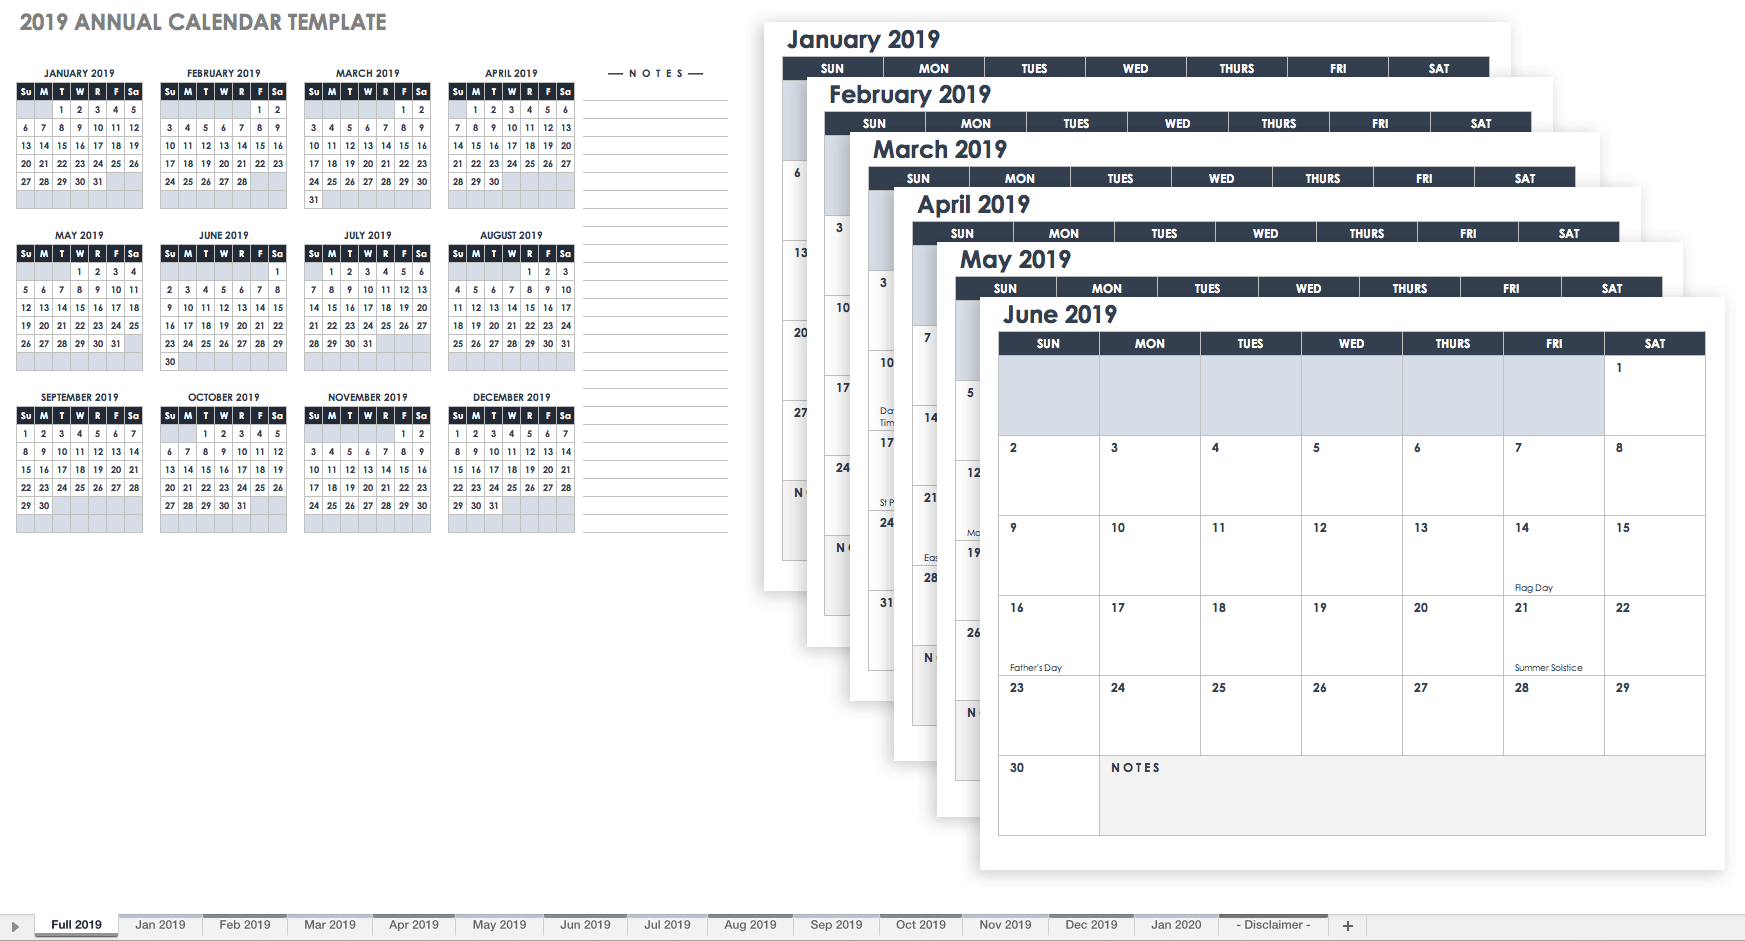 15 Free Monthly Calendar Templates | Smartsheet for Year Calendar 2020 With Space To Write